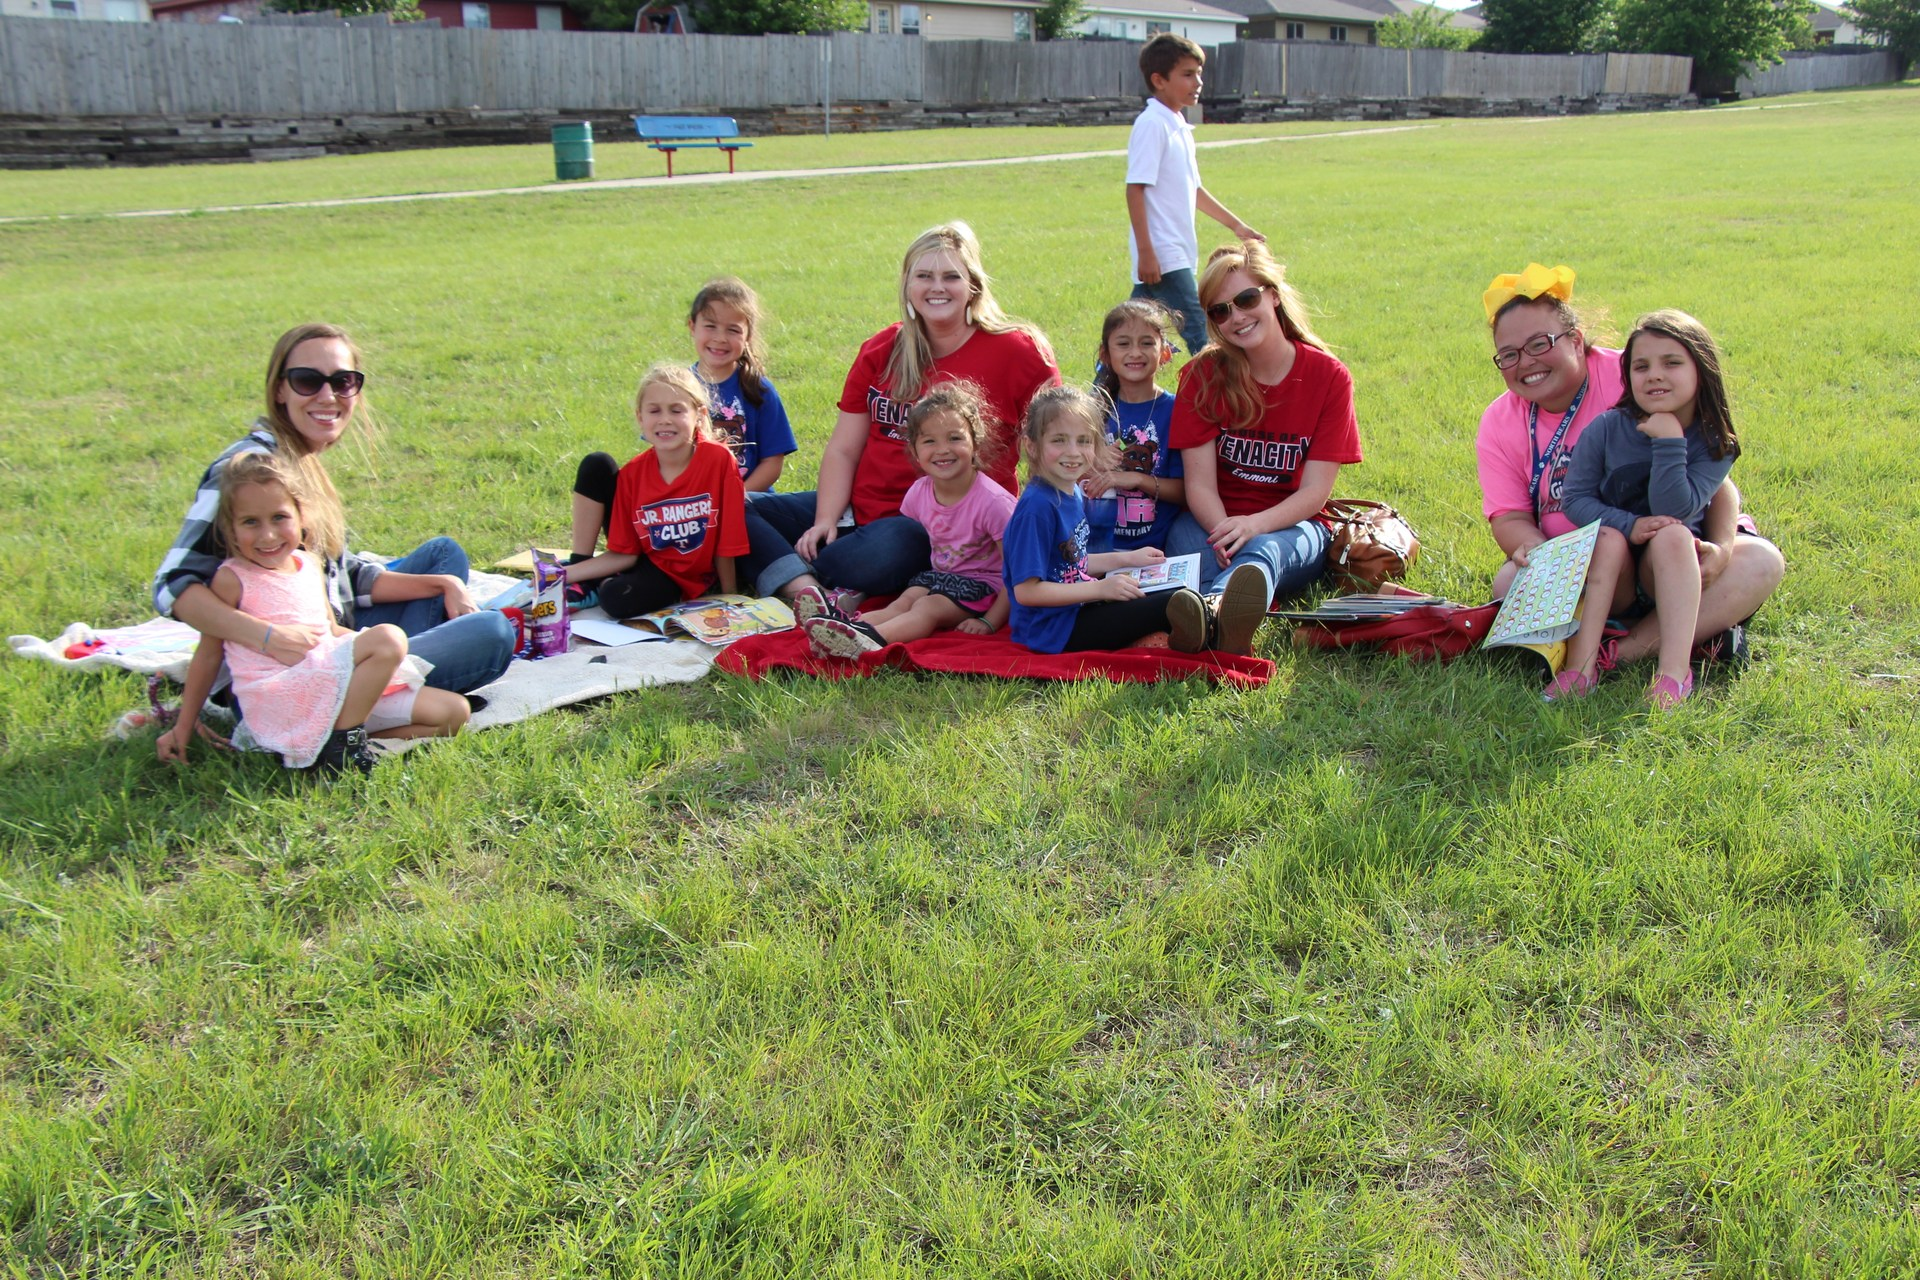 North Elementary's Reading in the Park